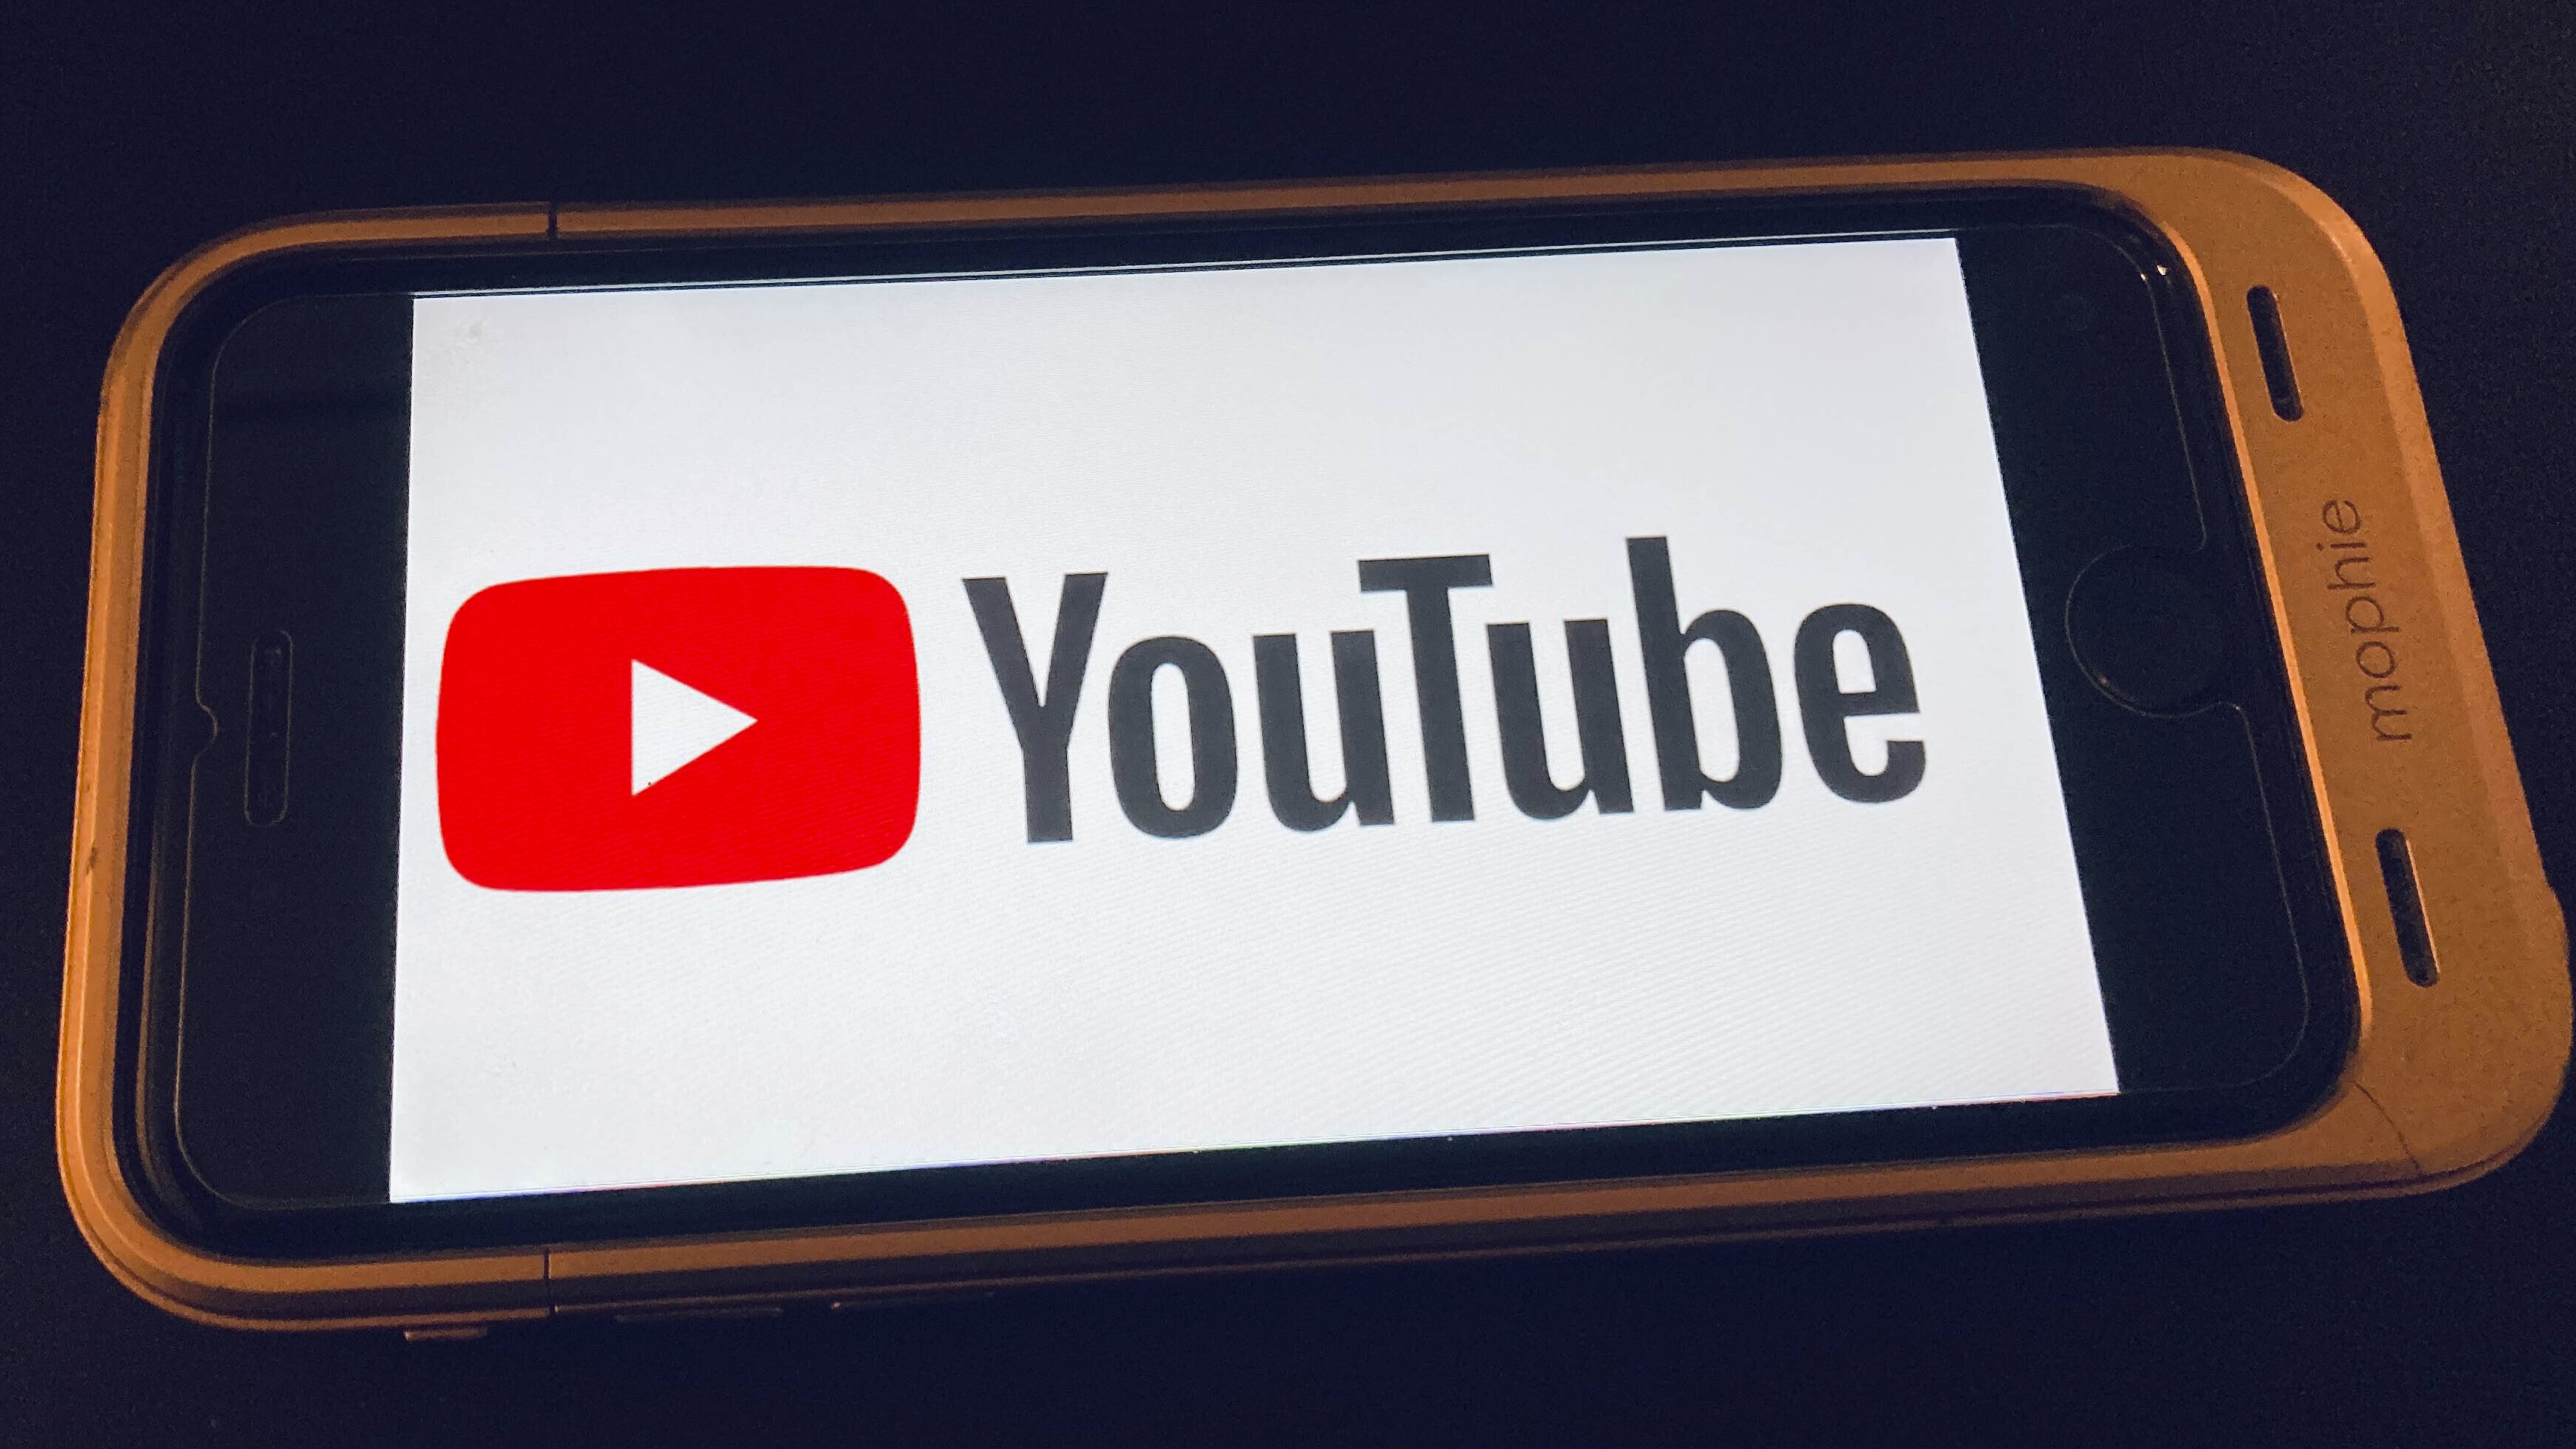 YouTube Will Finally Start Removing Videos Falsely Claiming Donald Trump Won U.S. Election